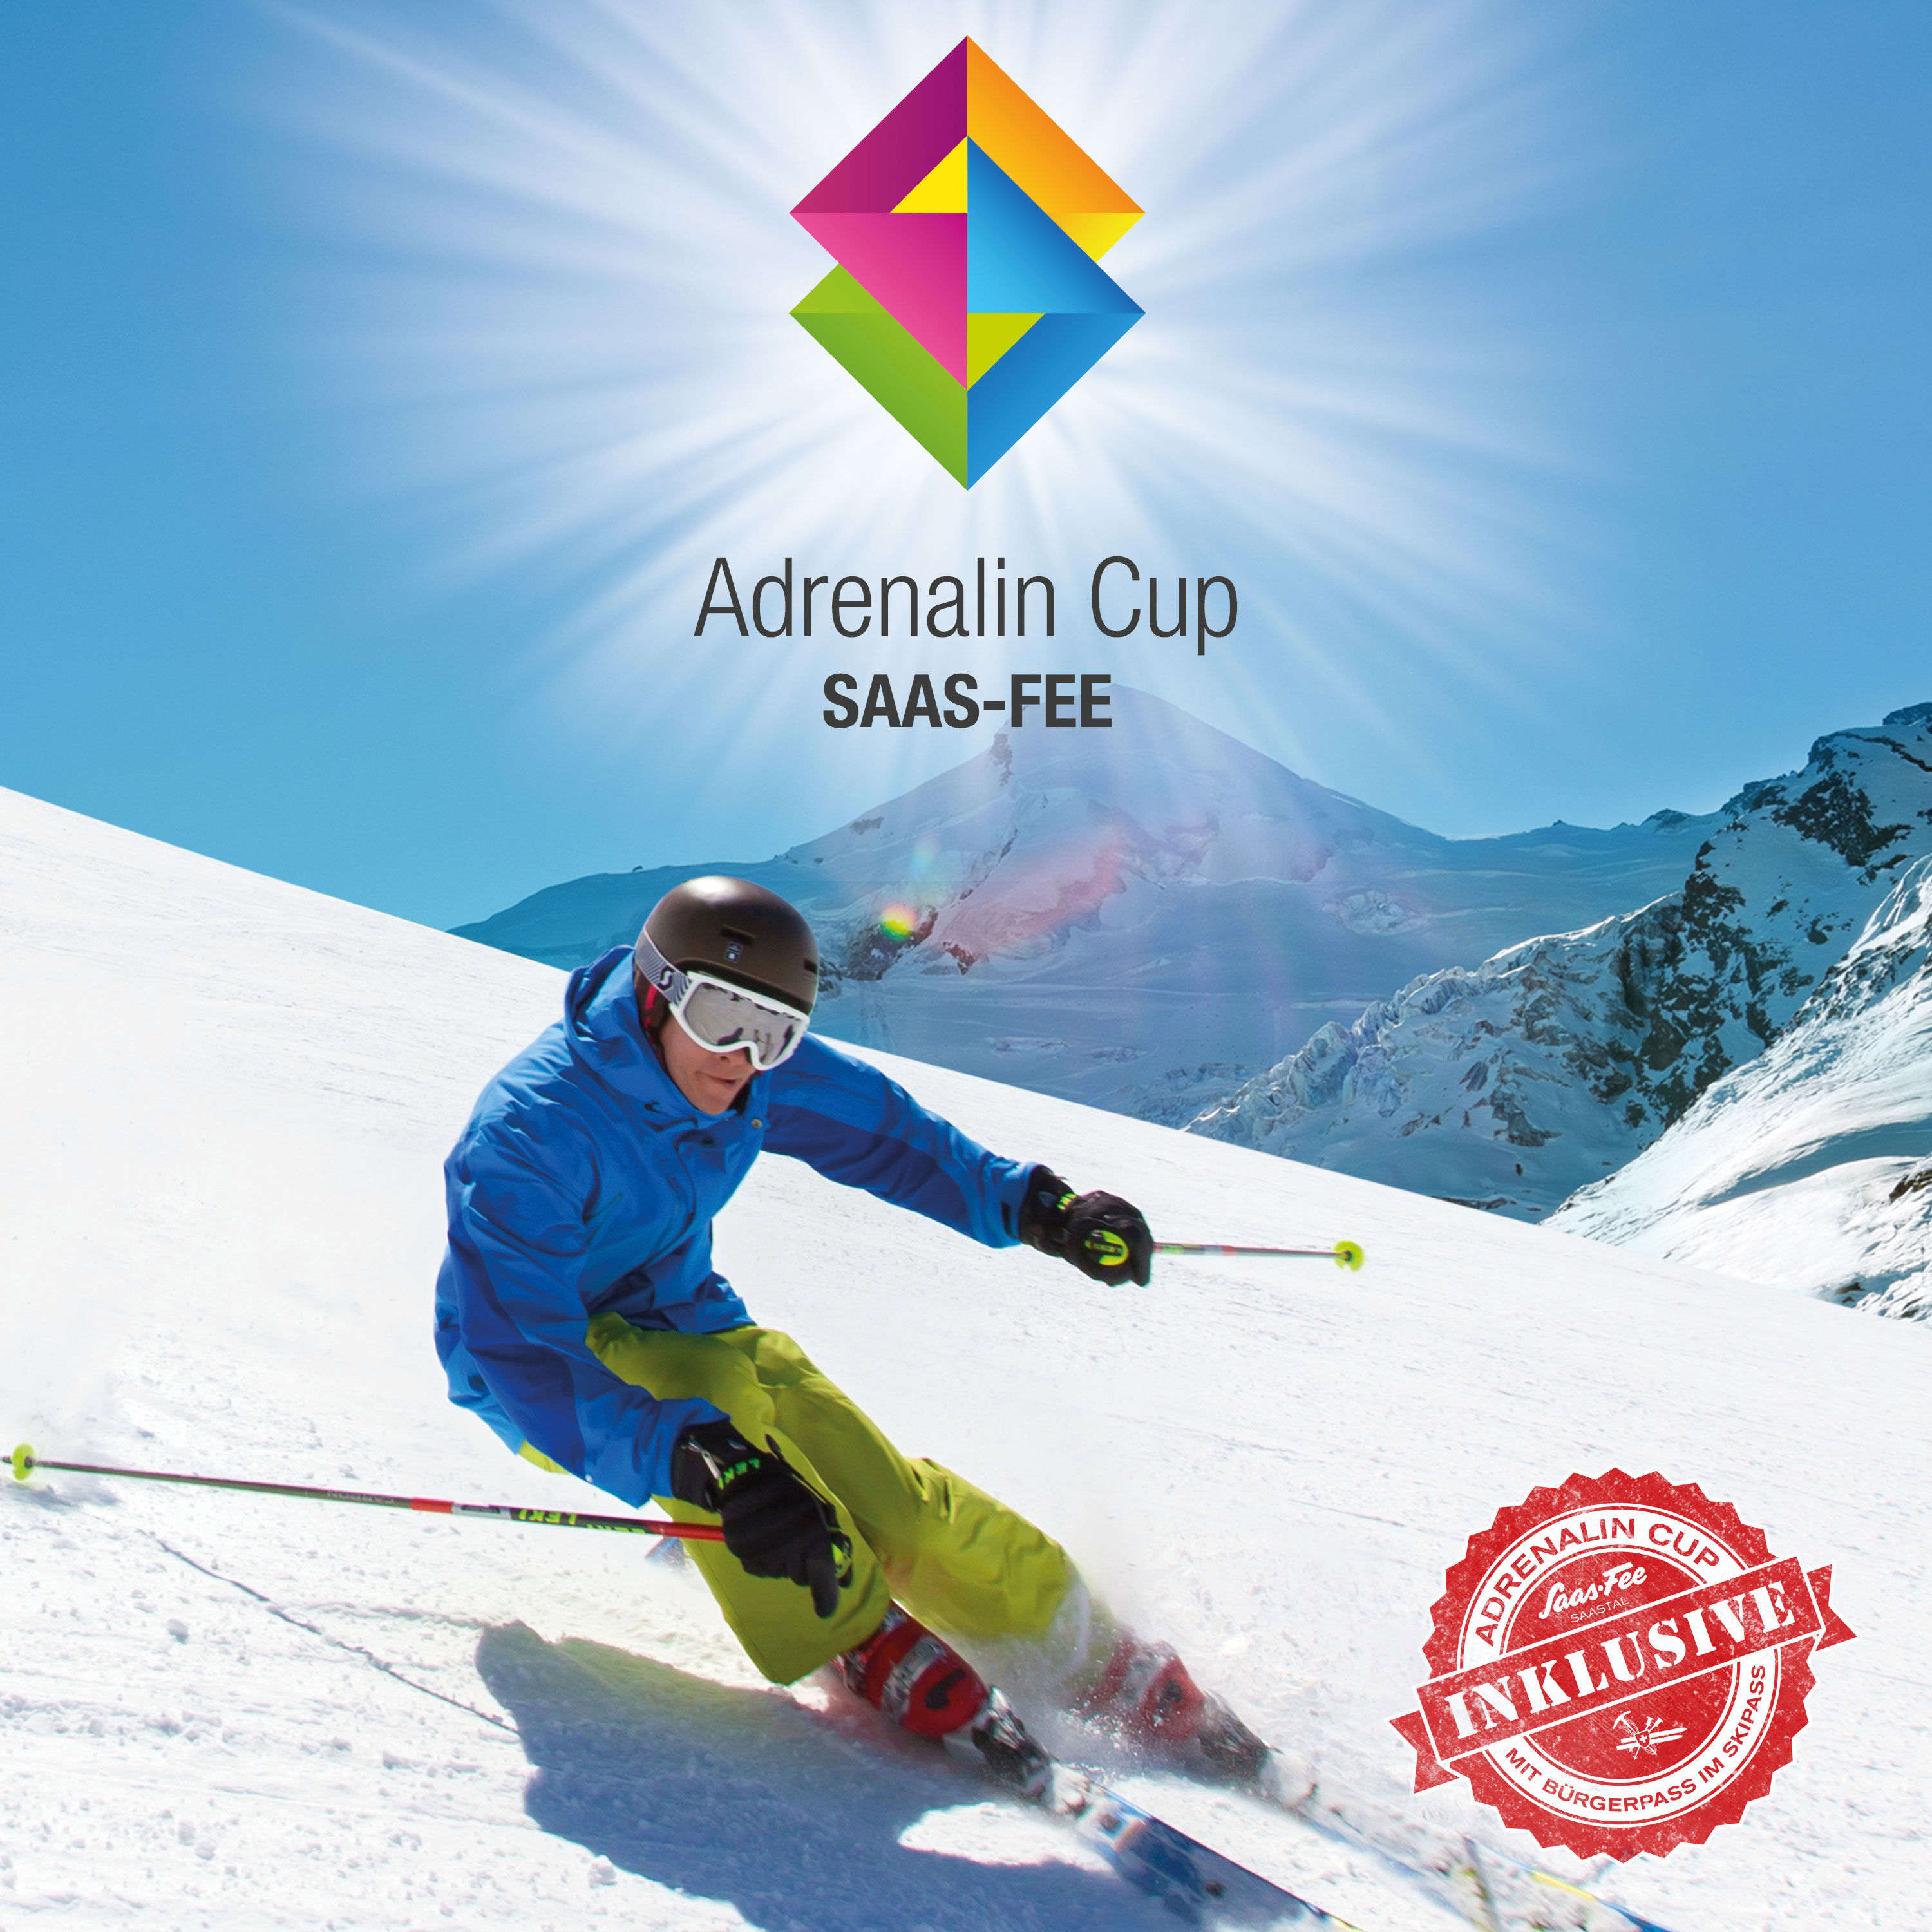 Adrenalin Cup Saas-Fee